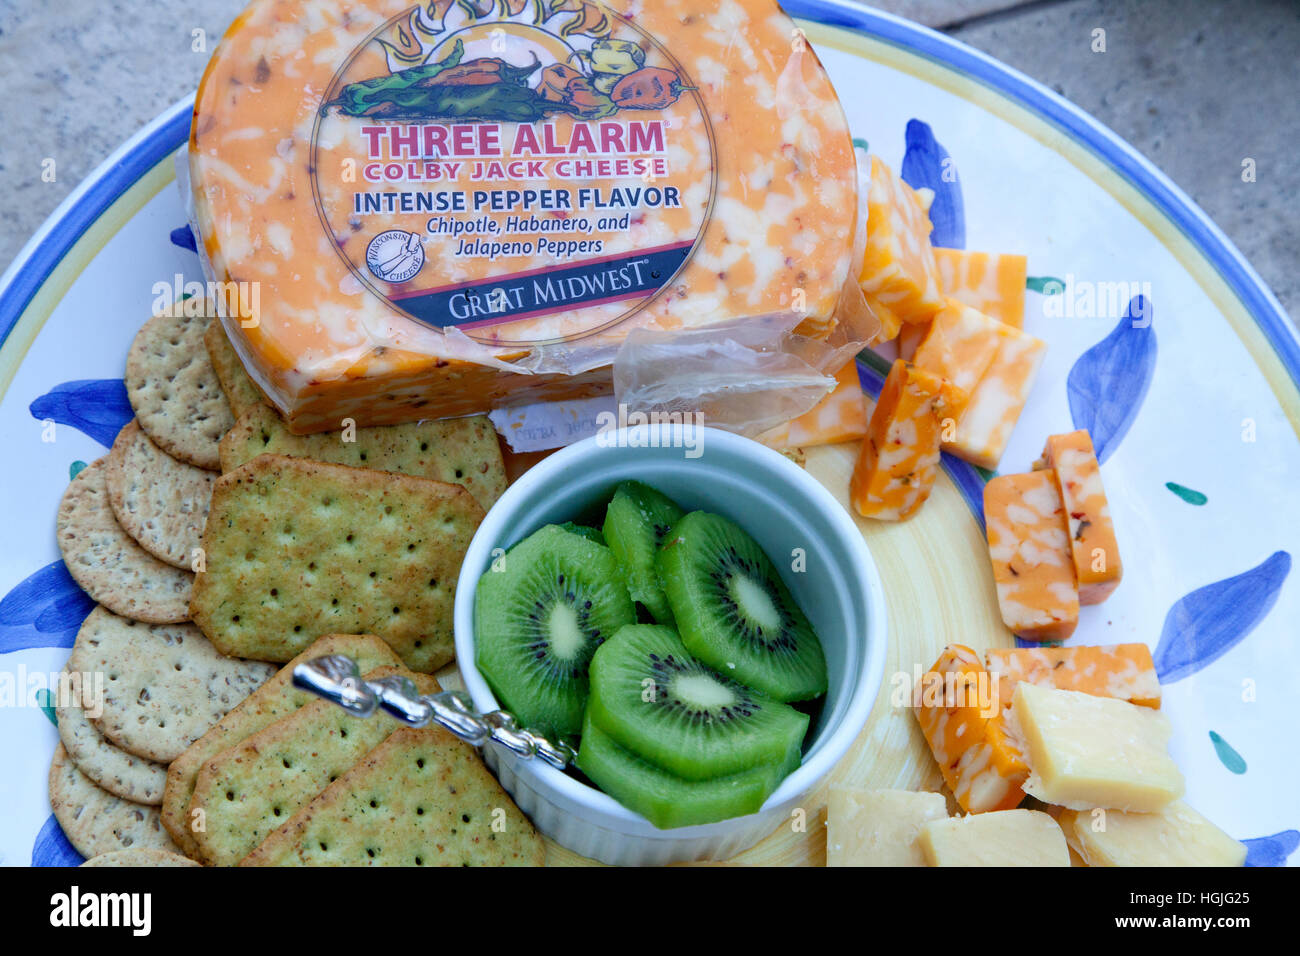 Snack tray with sliced kiwi fruit surrounded by crackers and Three Alarm intense pepper cheese. St Paul Minnesota - Stock Image